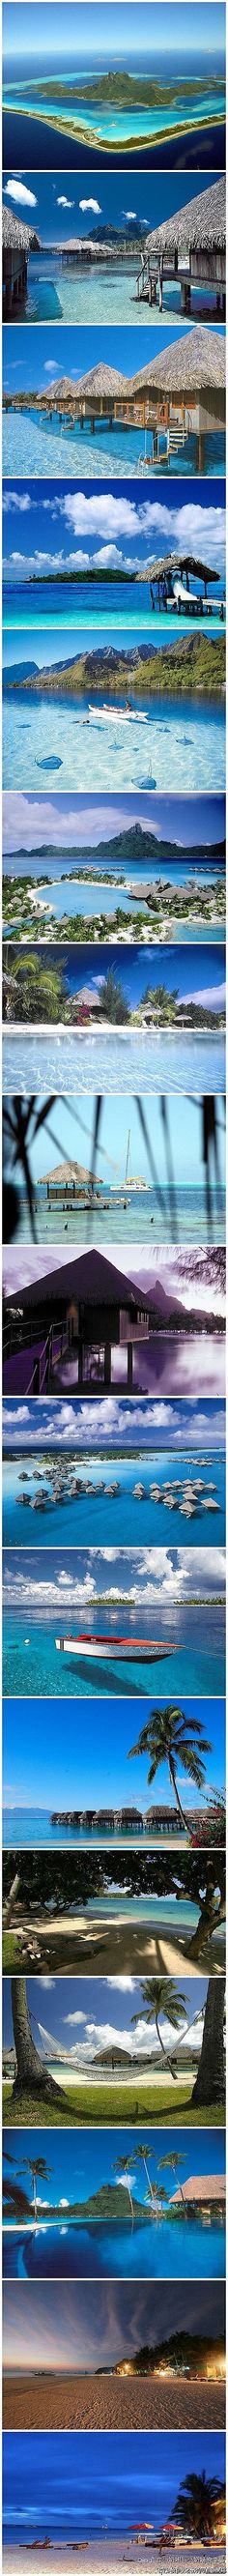 www.ispycandy.com Tahiti's Bora Bora - looks like HEAVEN perfect honeymoon destination!!!